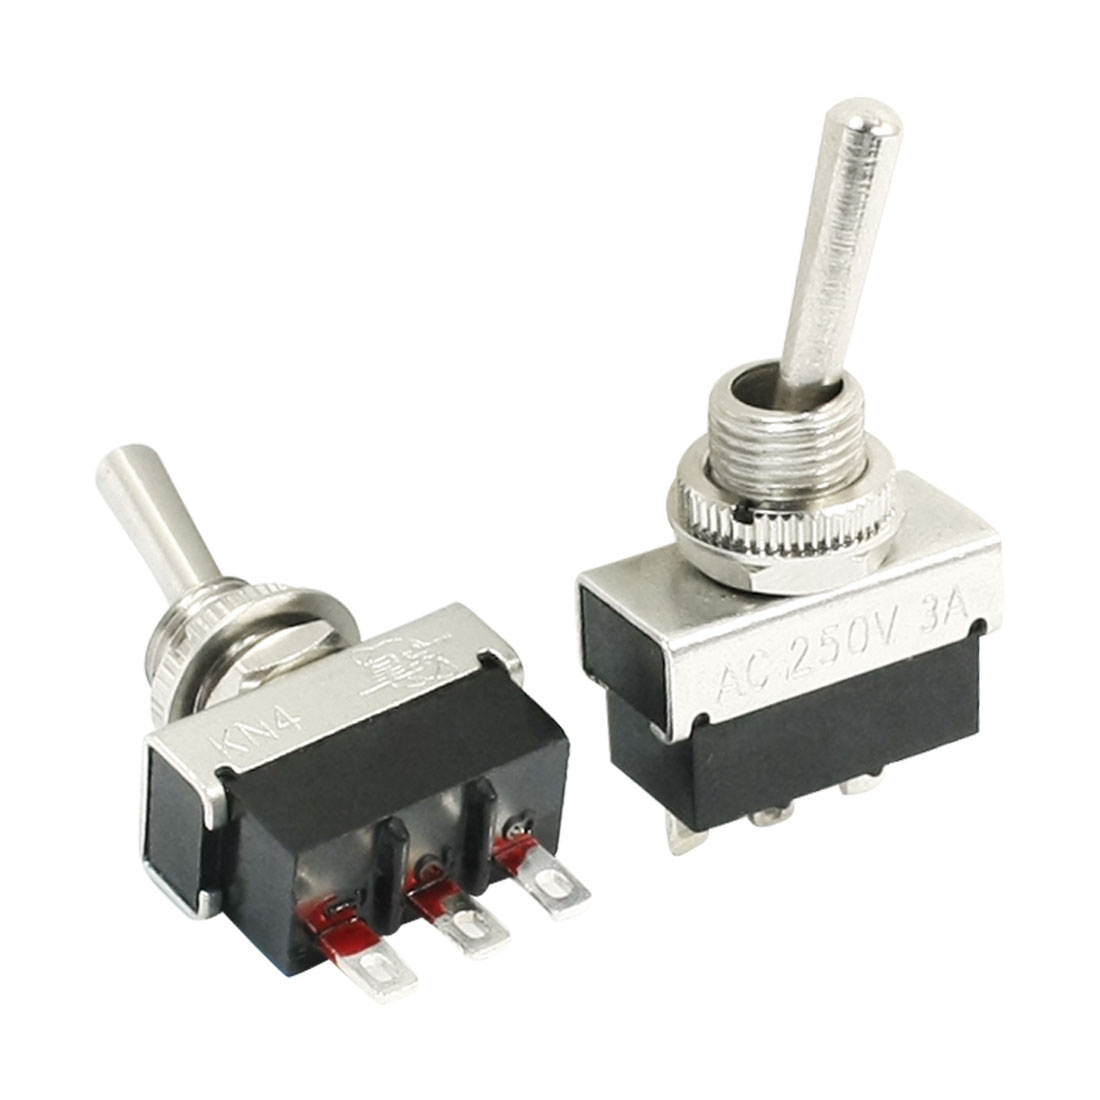 2PCS KN4-102 AC 250V 3A SPDT 2 Position Rocker Miniature Toggle Switch